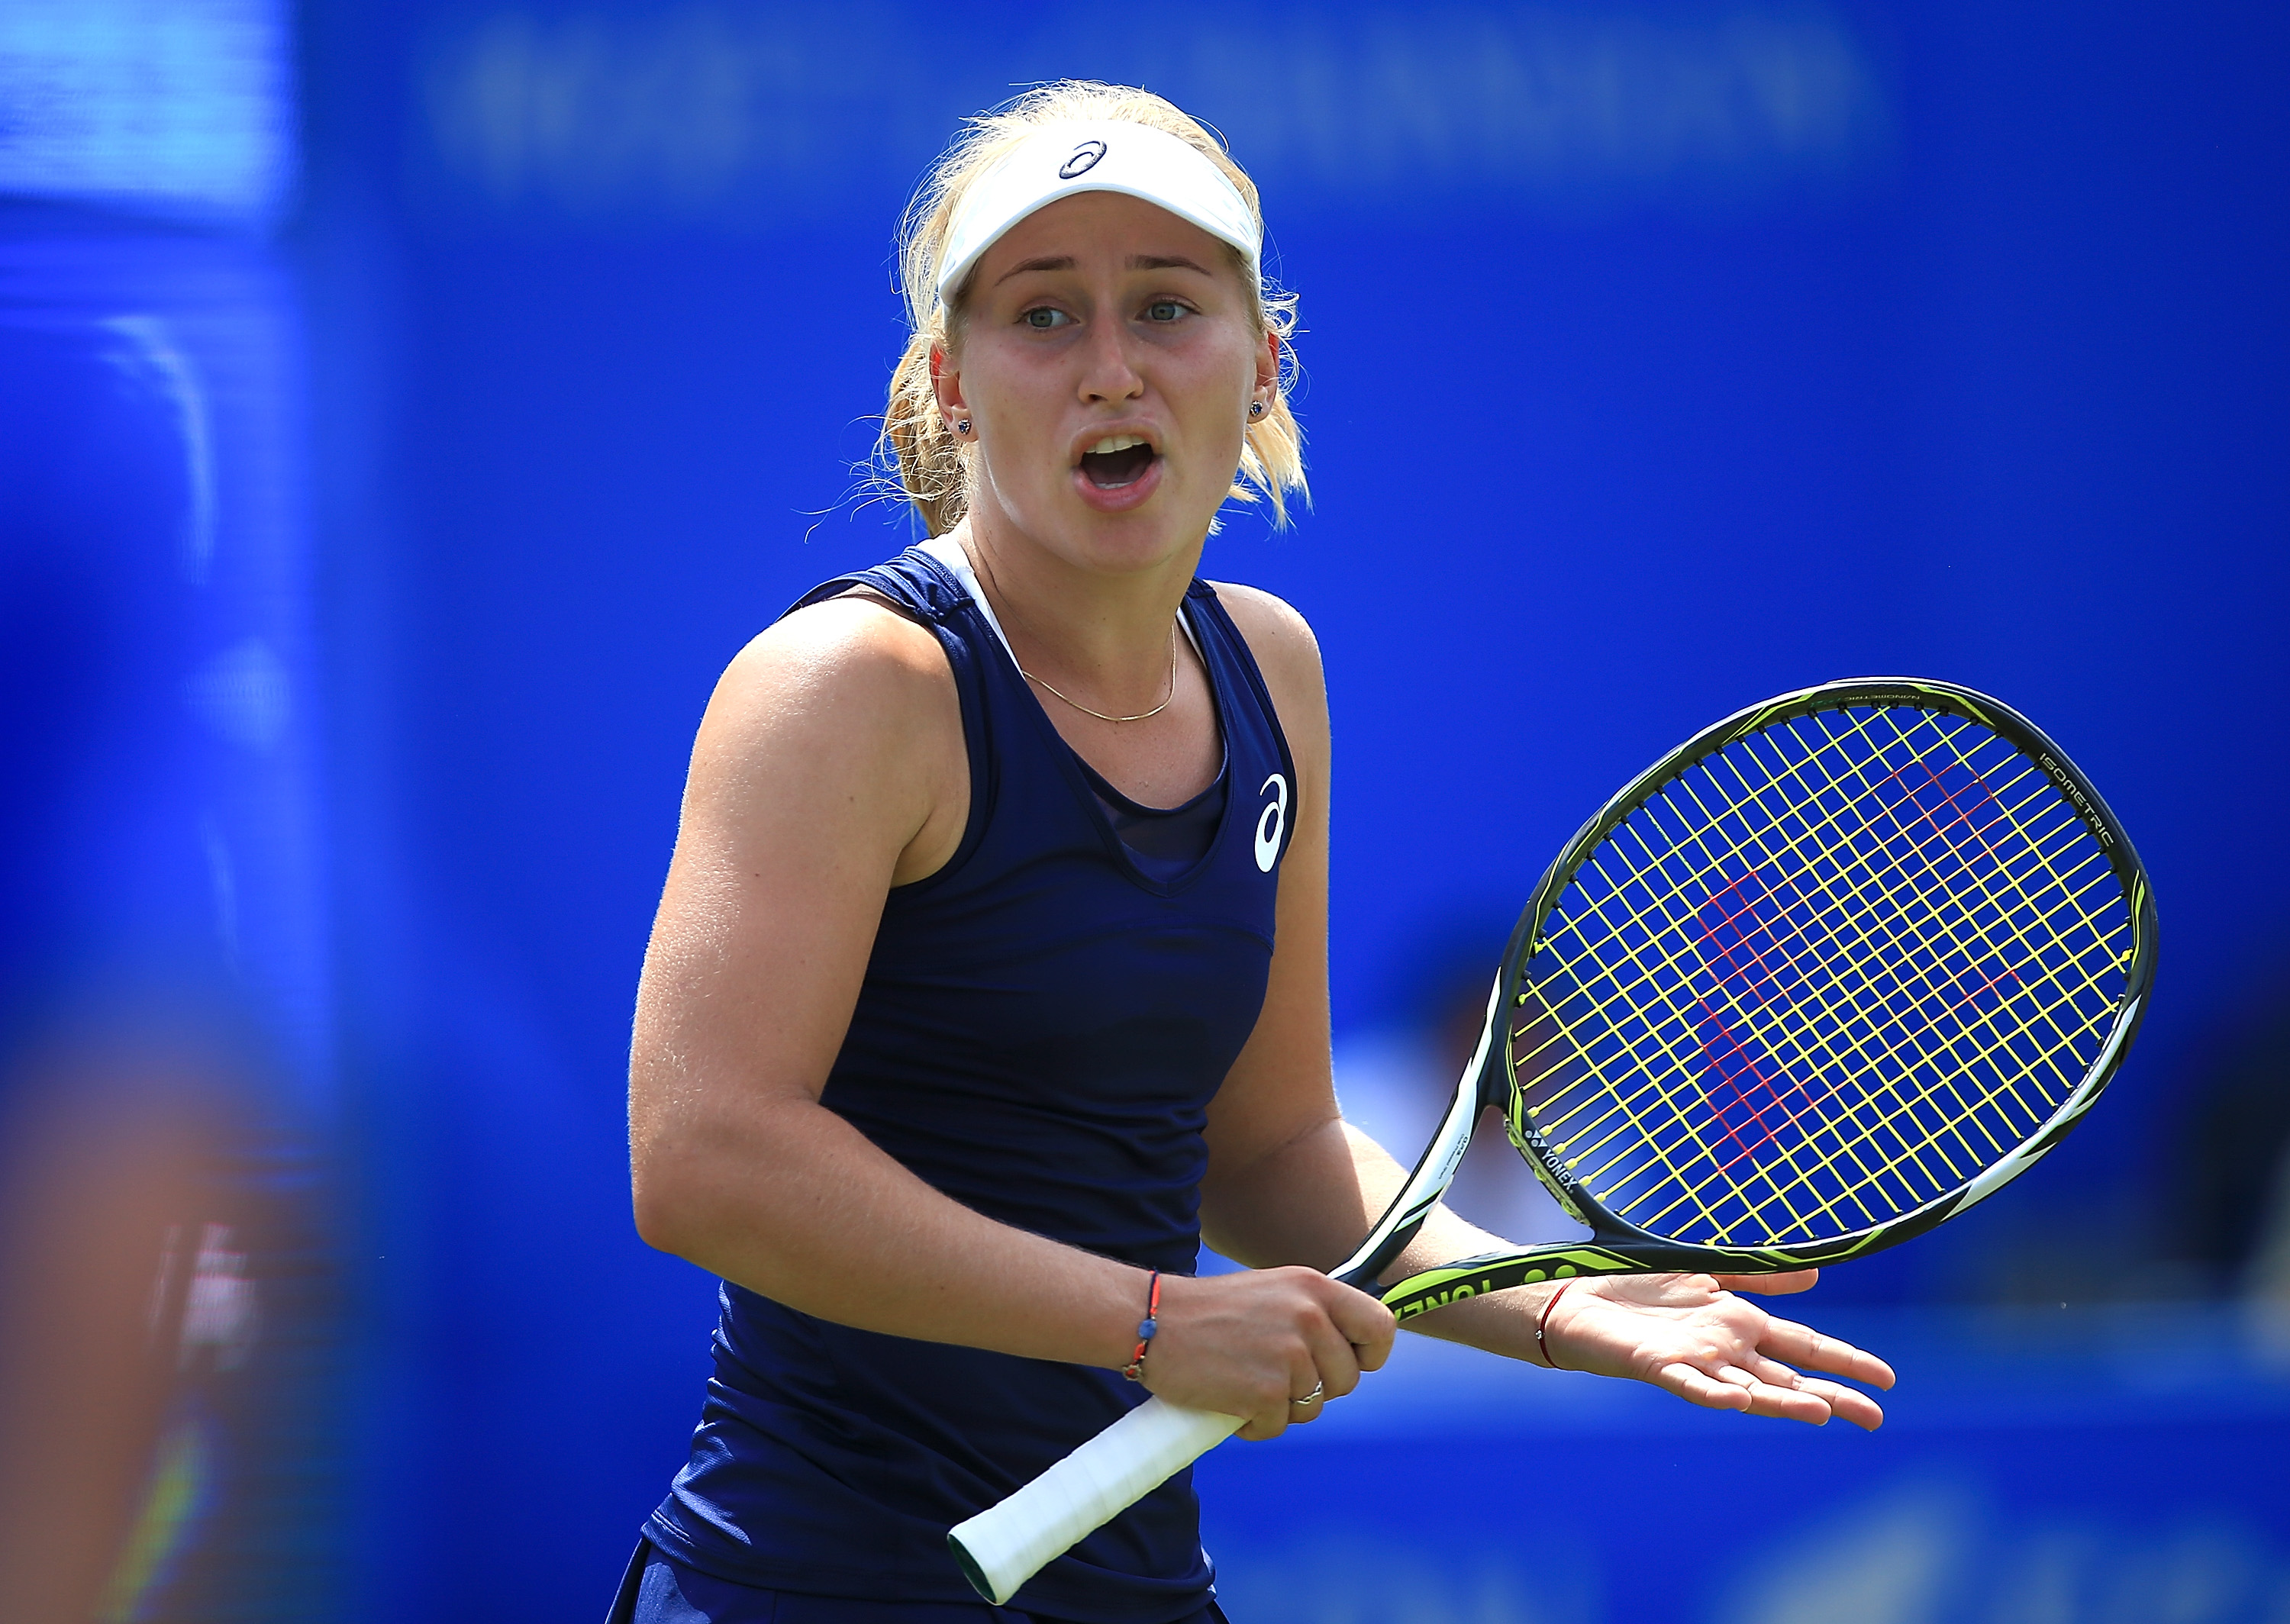 Petra Kvitova earns 20th career title with victory in Aegon Classic final